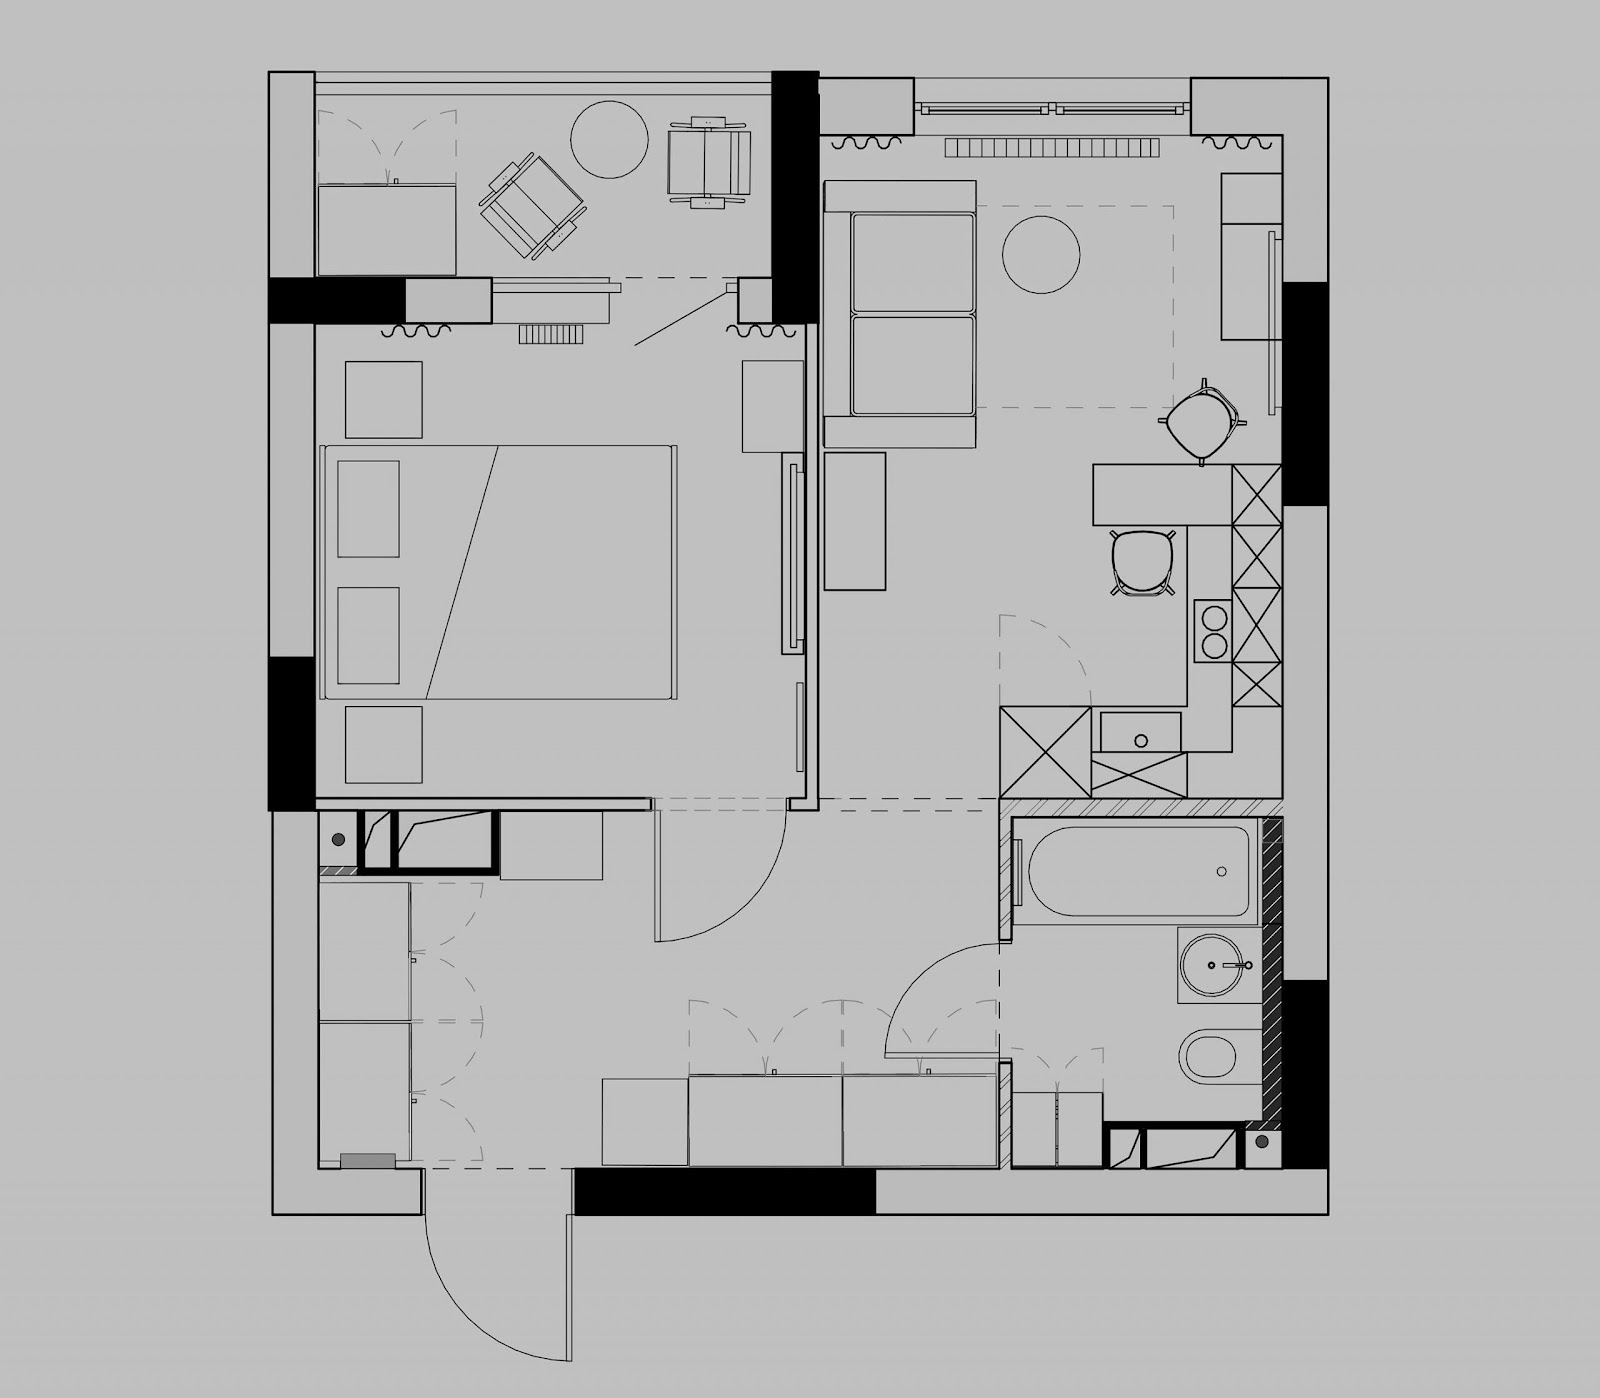 http://cdn.home-designing.com/wp-content/uploads/2021/03/small-apartment-floor-plan-scaled.jpg